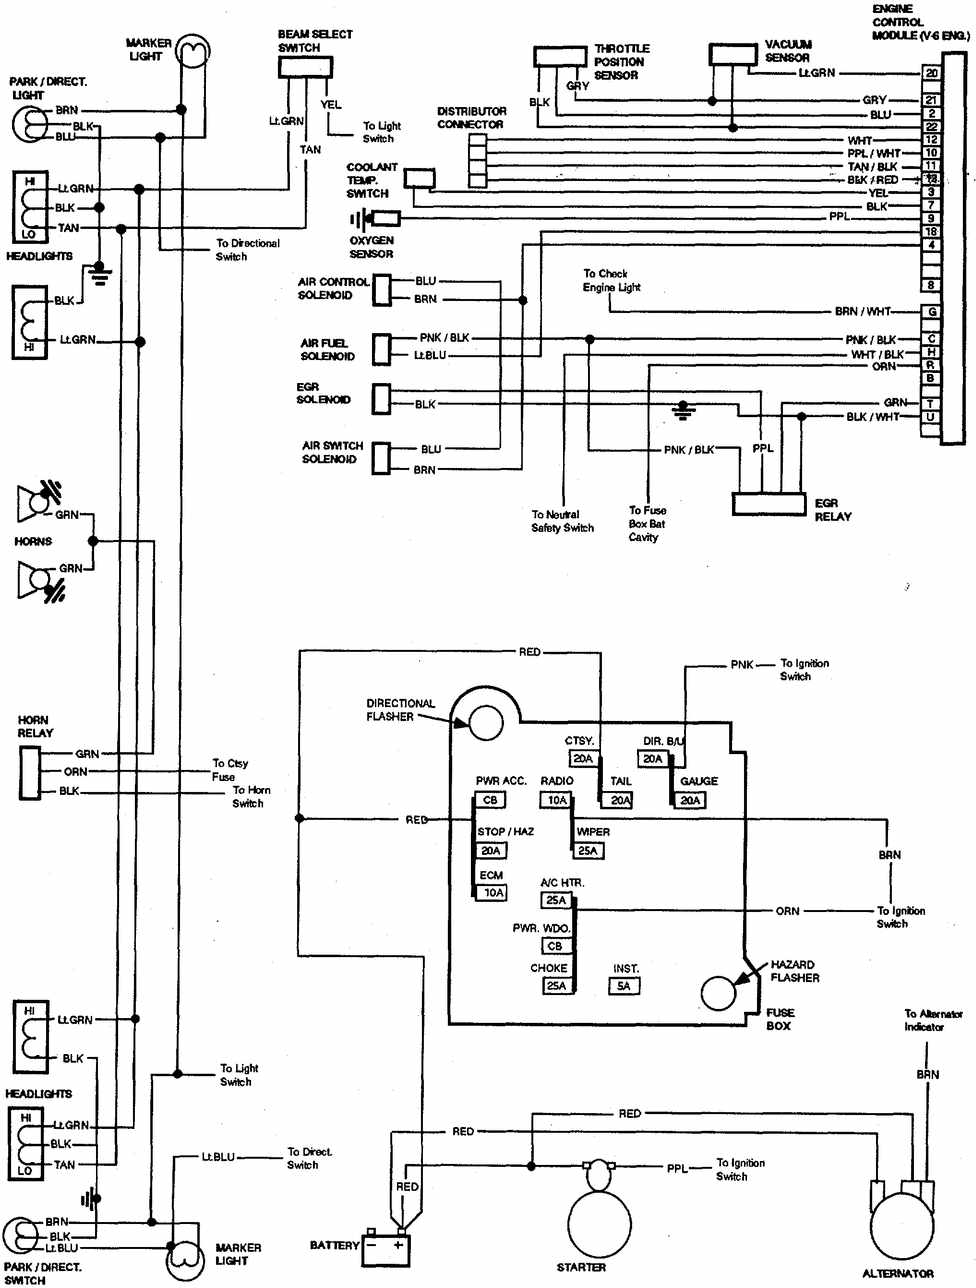 small resolution of 1977 chevy wiring diagram free picture schematic simple wiring schema 305 chevy wiring diagrams free 75